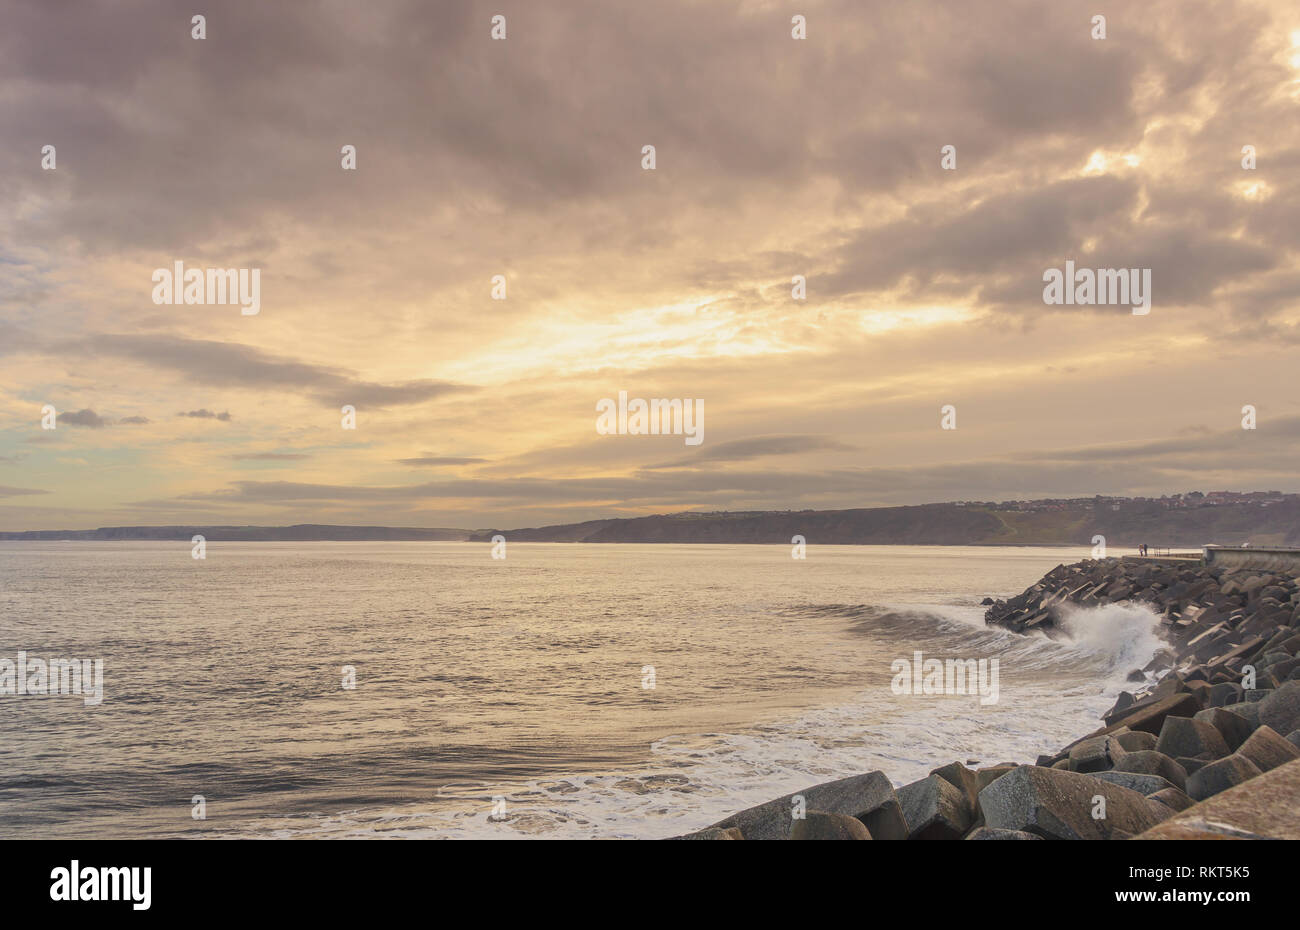 A wave breaks on the rocks at Scarborough in winter. A headland is in the distance and a dramatic cloud formation is above. - Stock Image